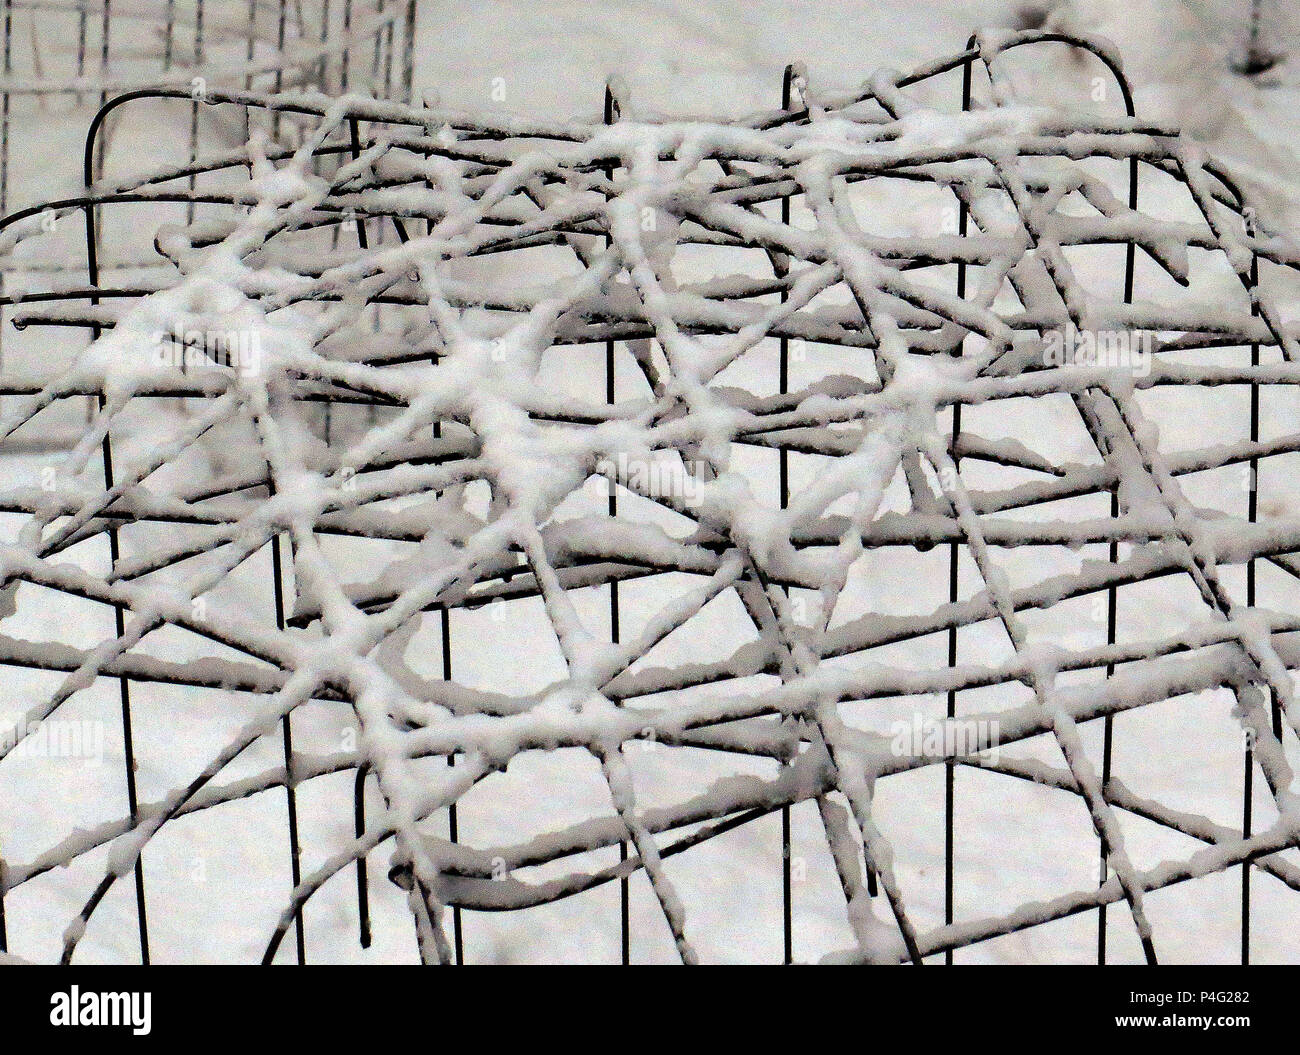 Arizona, USA. 2nd Jan, 2017. Snow dusts some garden fencing along ...